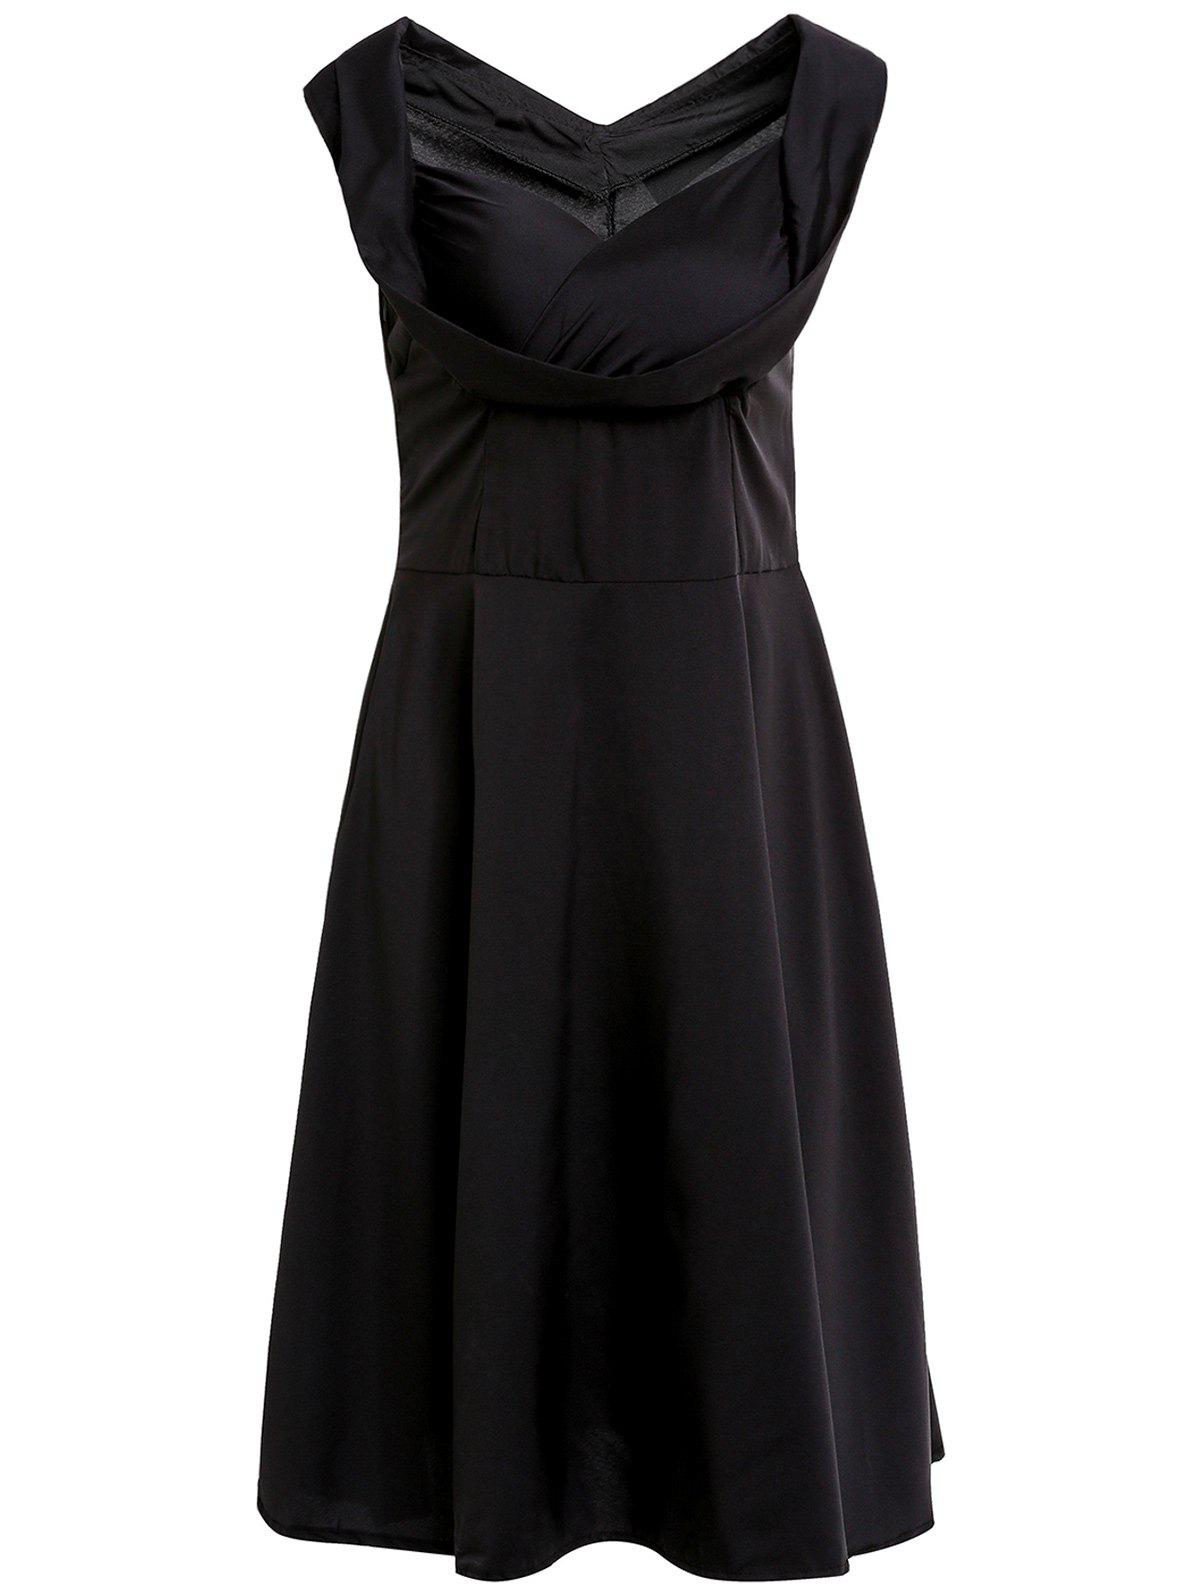 Retro Solid Color Sweetheart Neck Midi Dress For Women - BLACK S